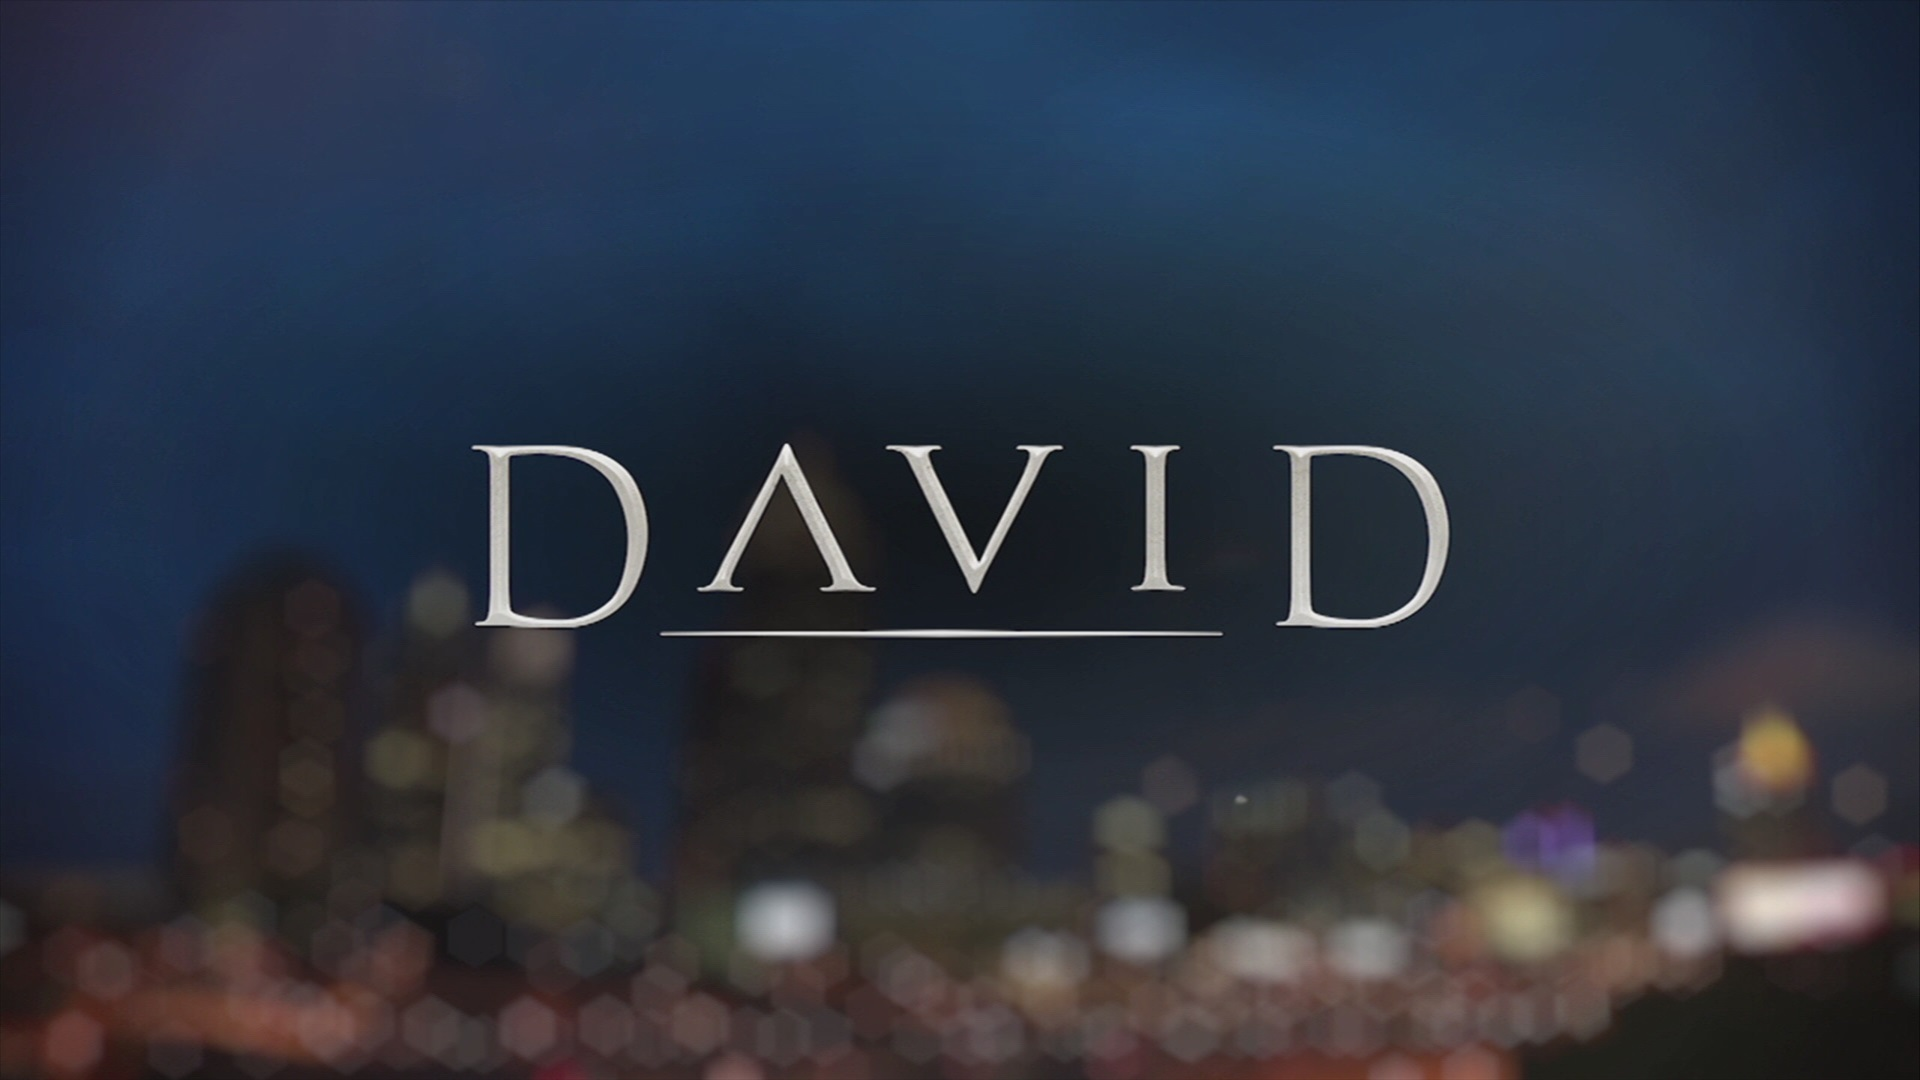 David - The Reluctant Hero